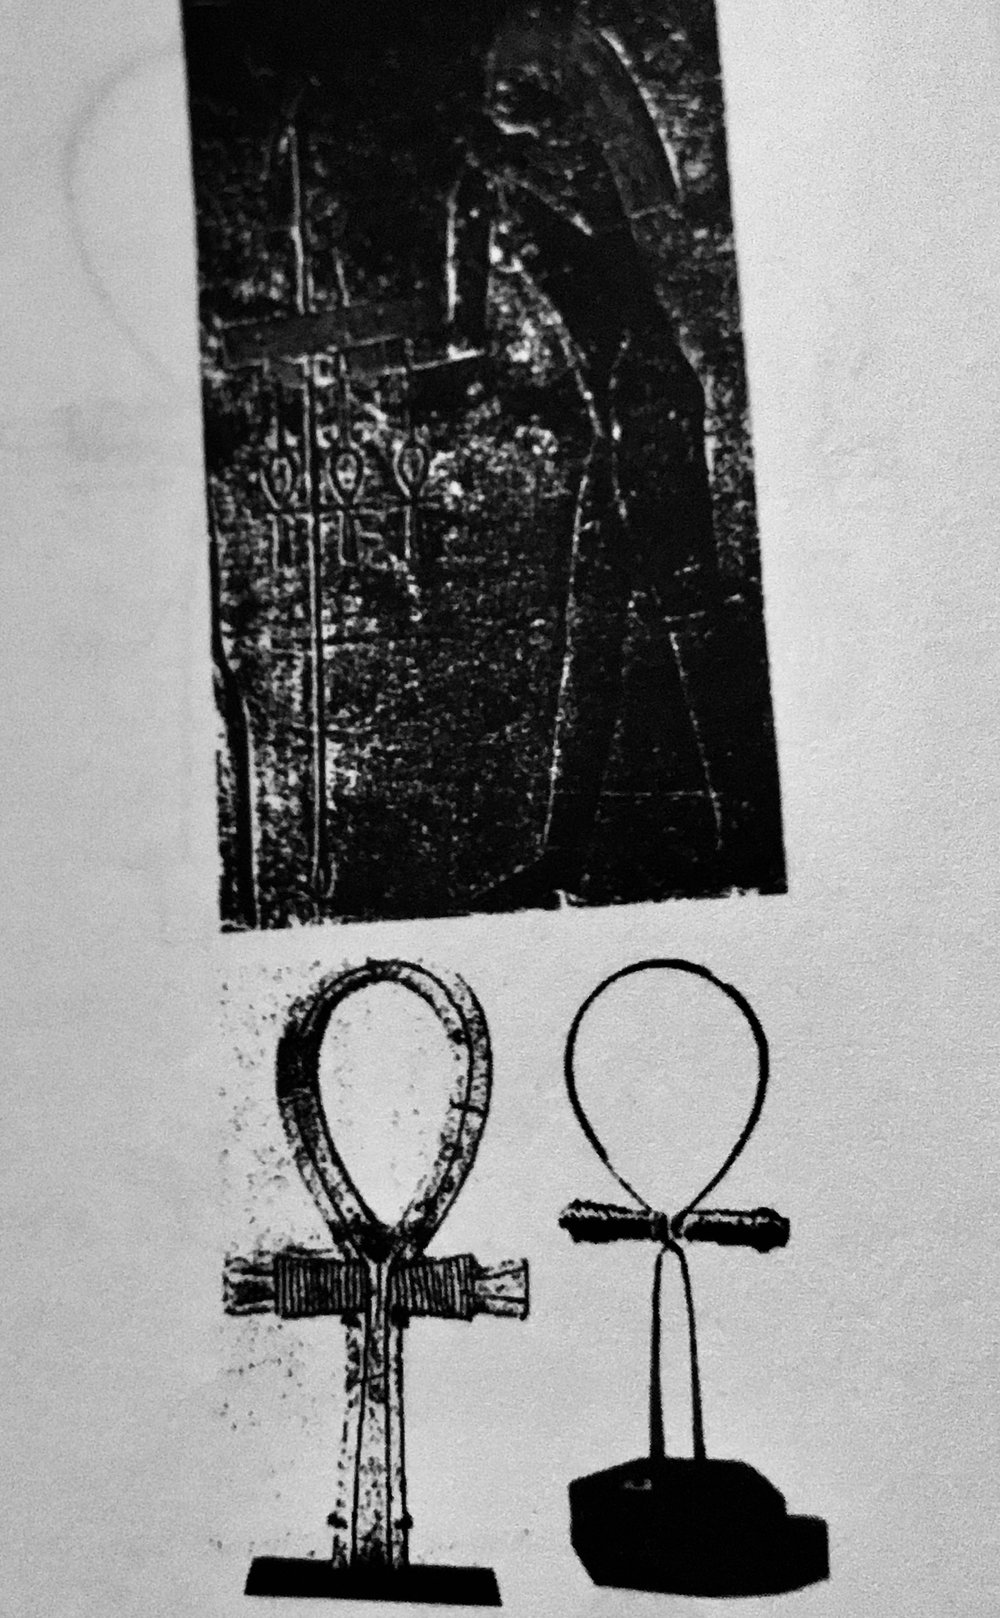 Ankh and Egyptian electromagnetic circuitry